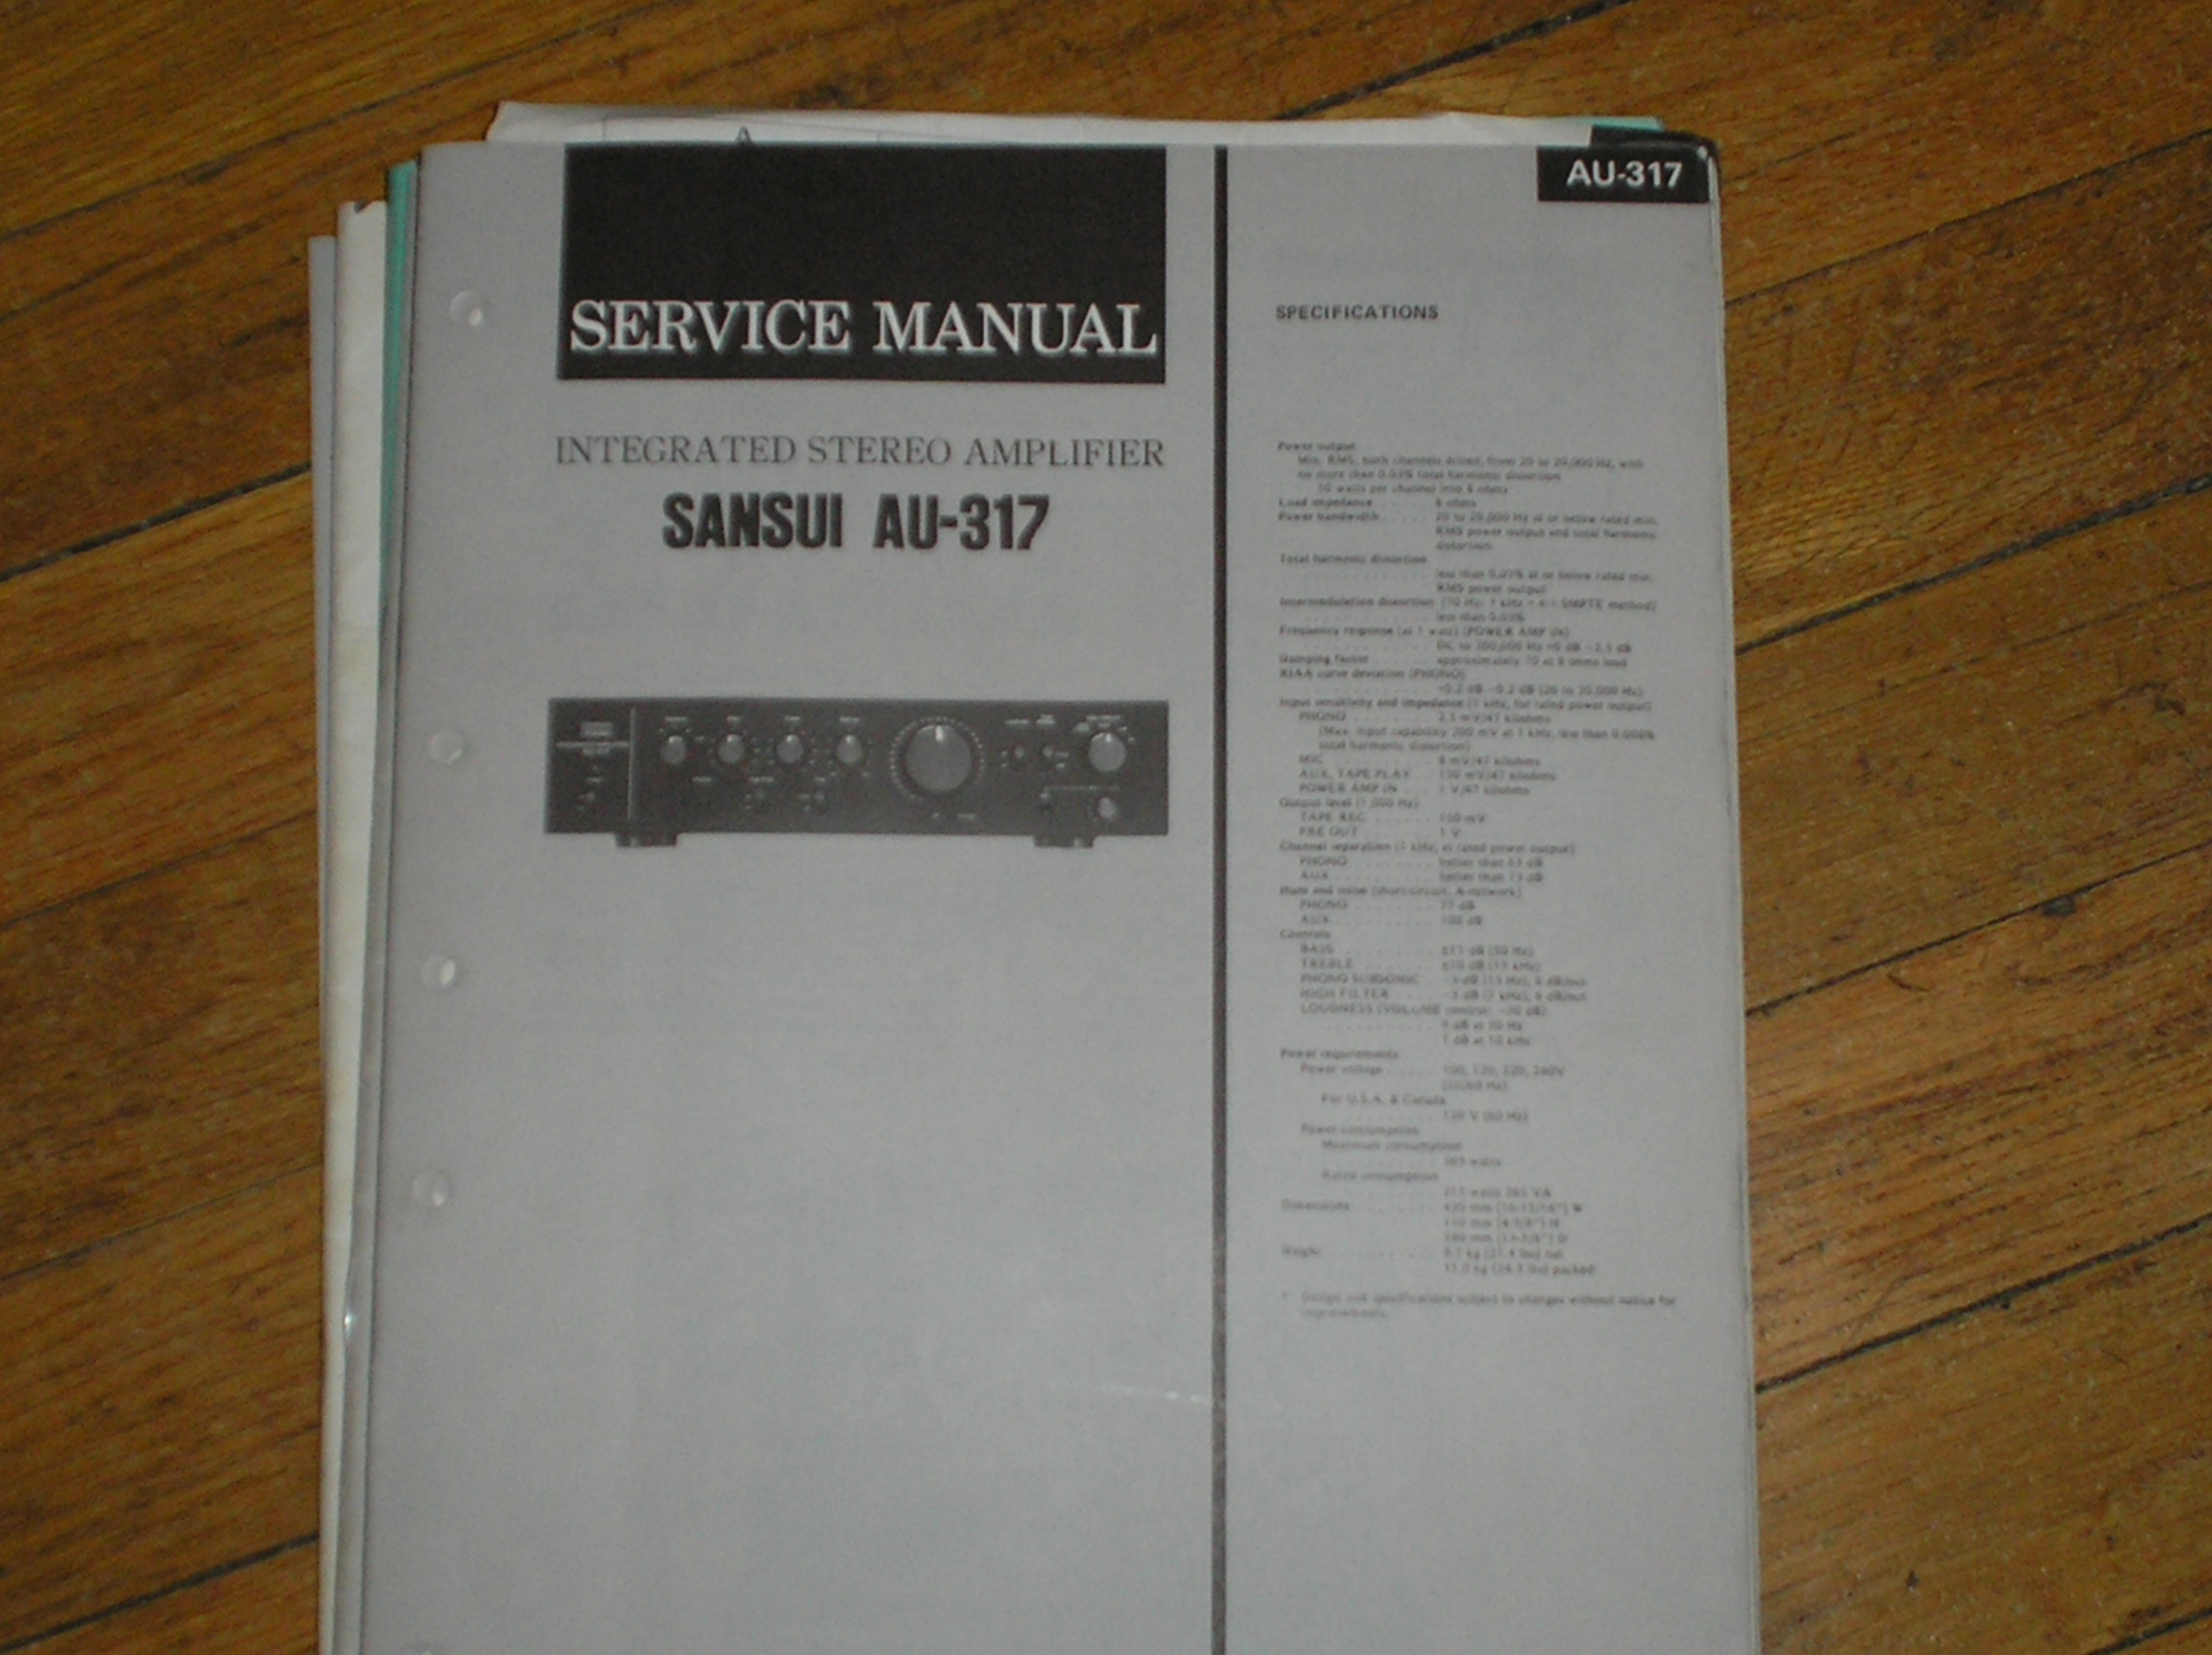 AU-317 Amplifier Service Manual